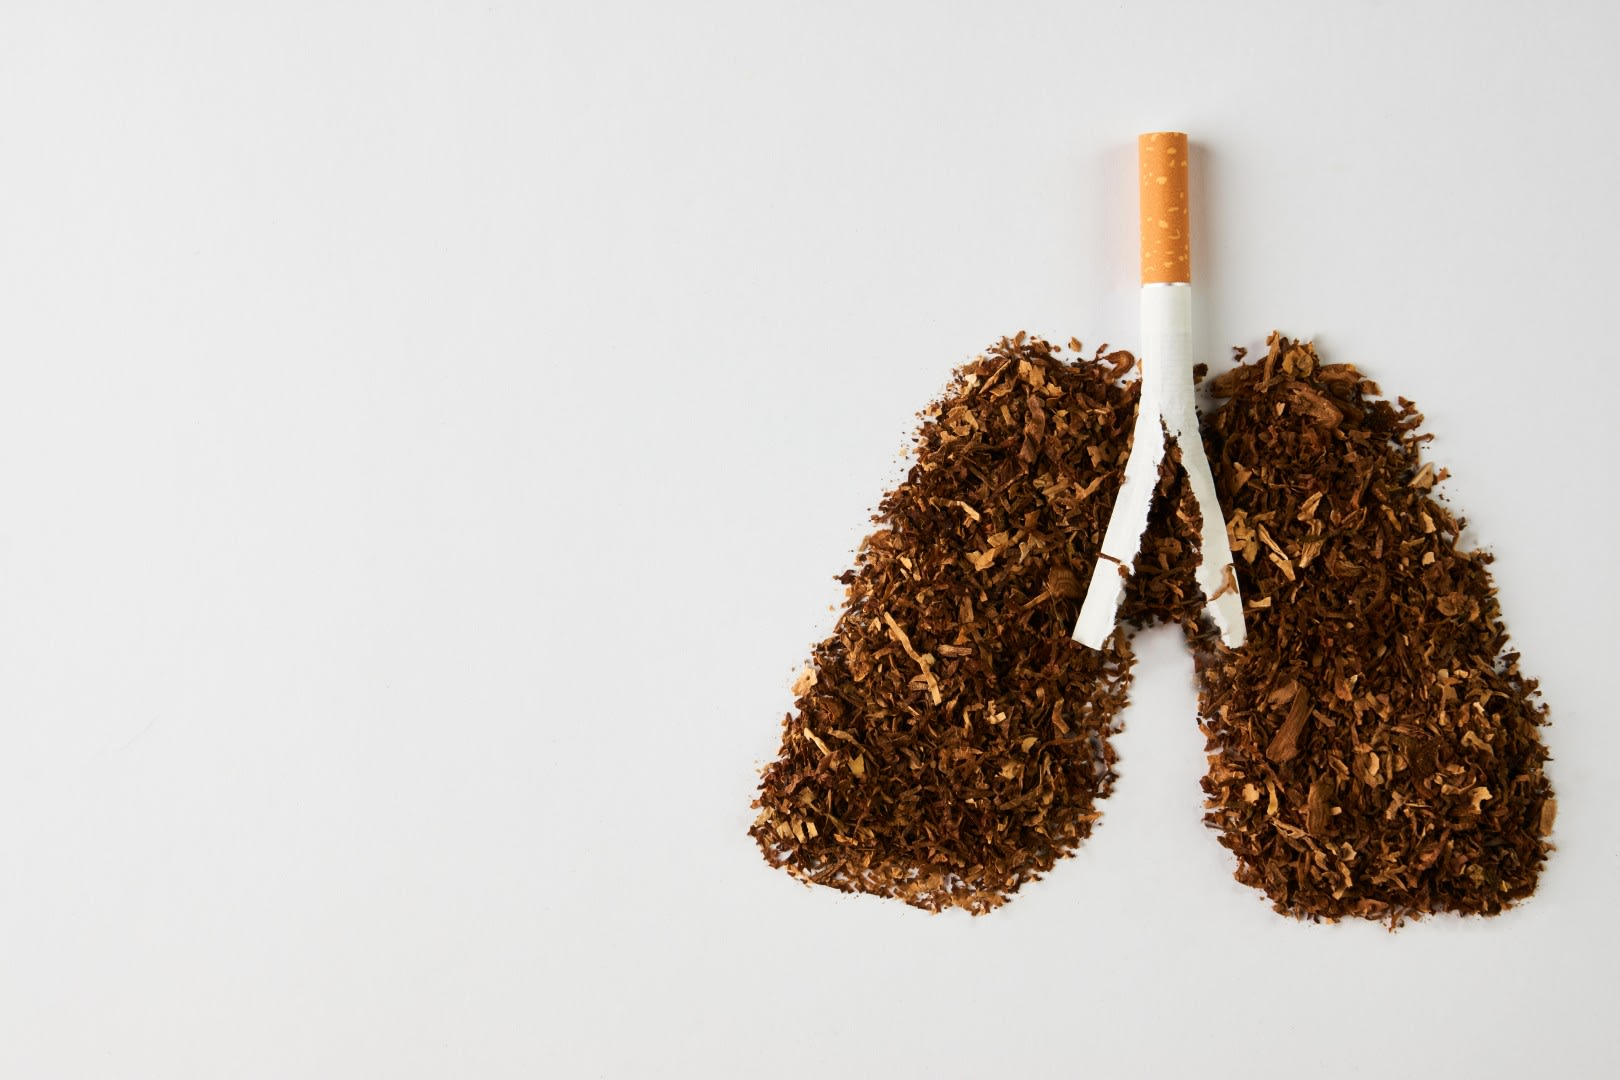 World No Tobacco Day Pair of Lungs made of Tobacco